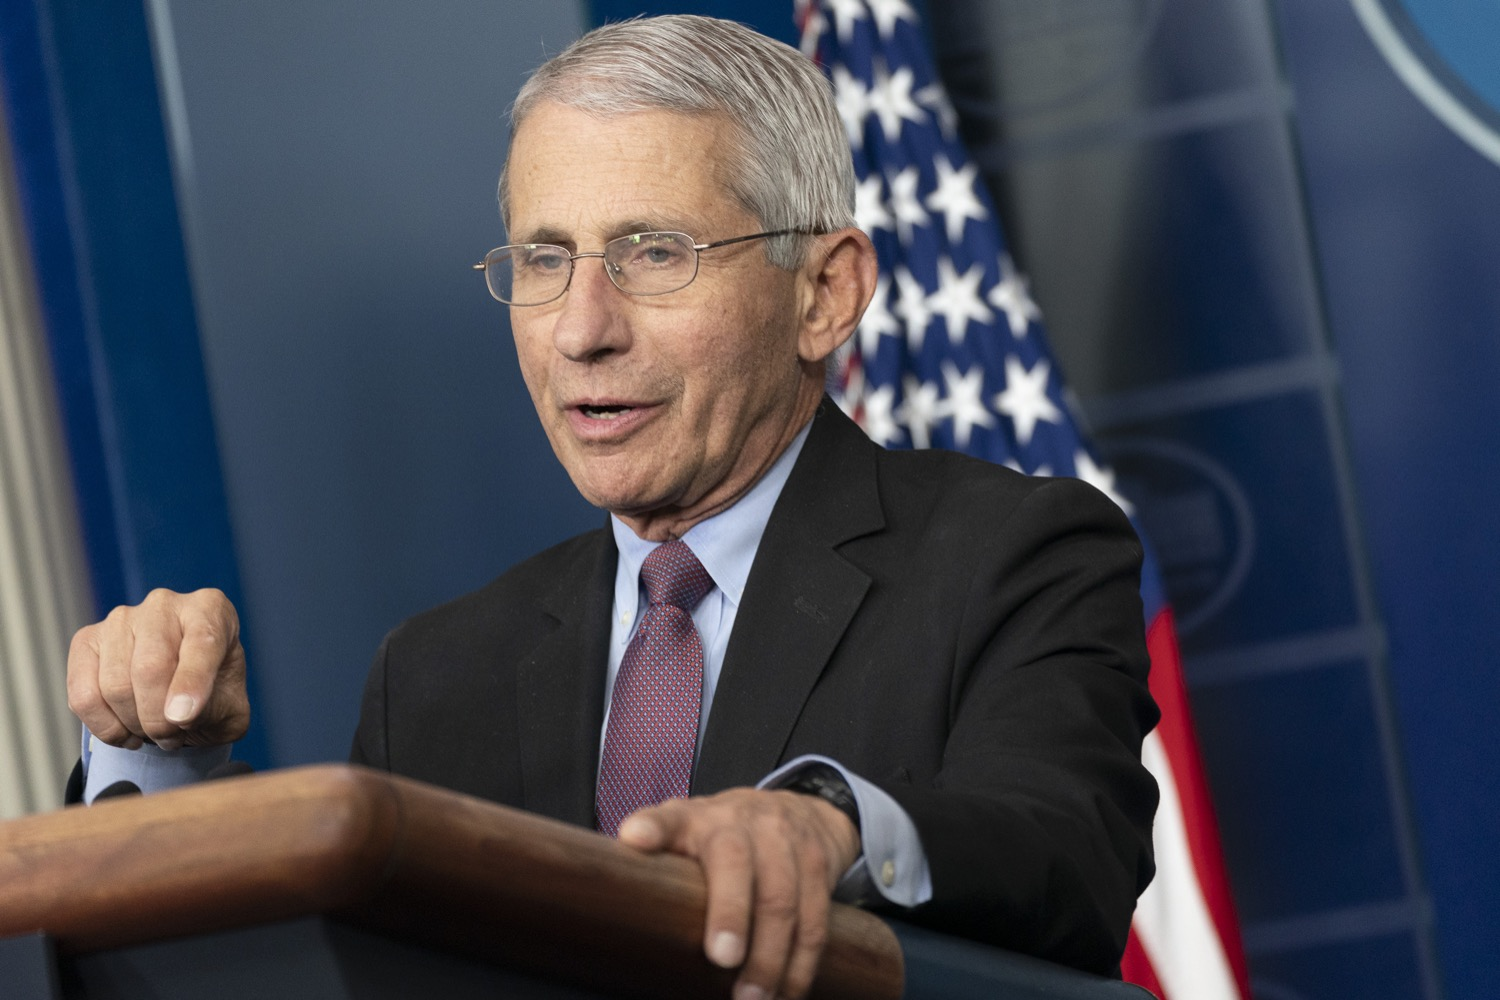 anthony fauci talking at podium at white house press briefing